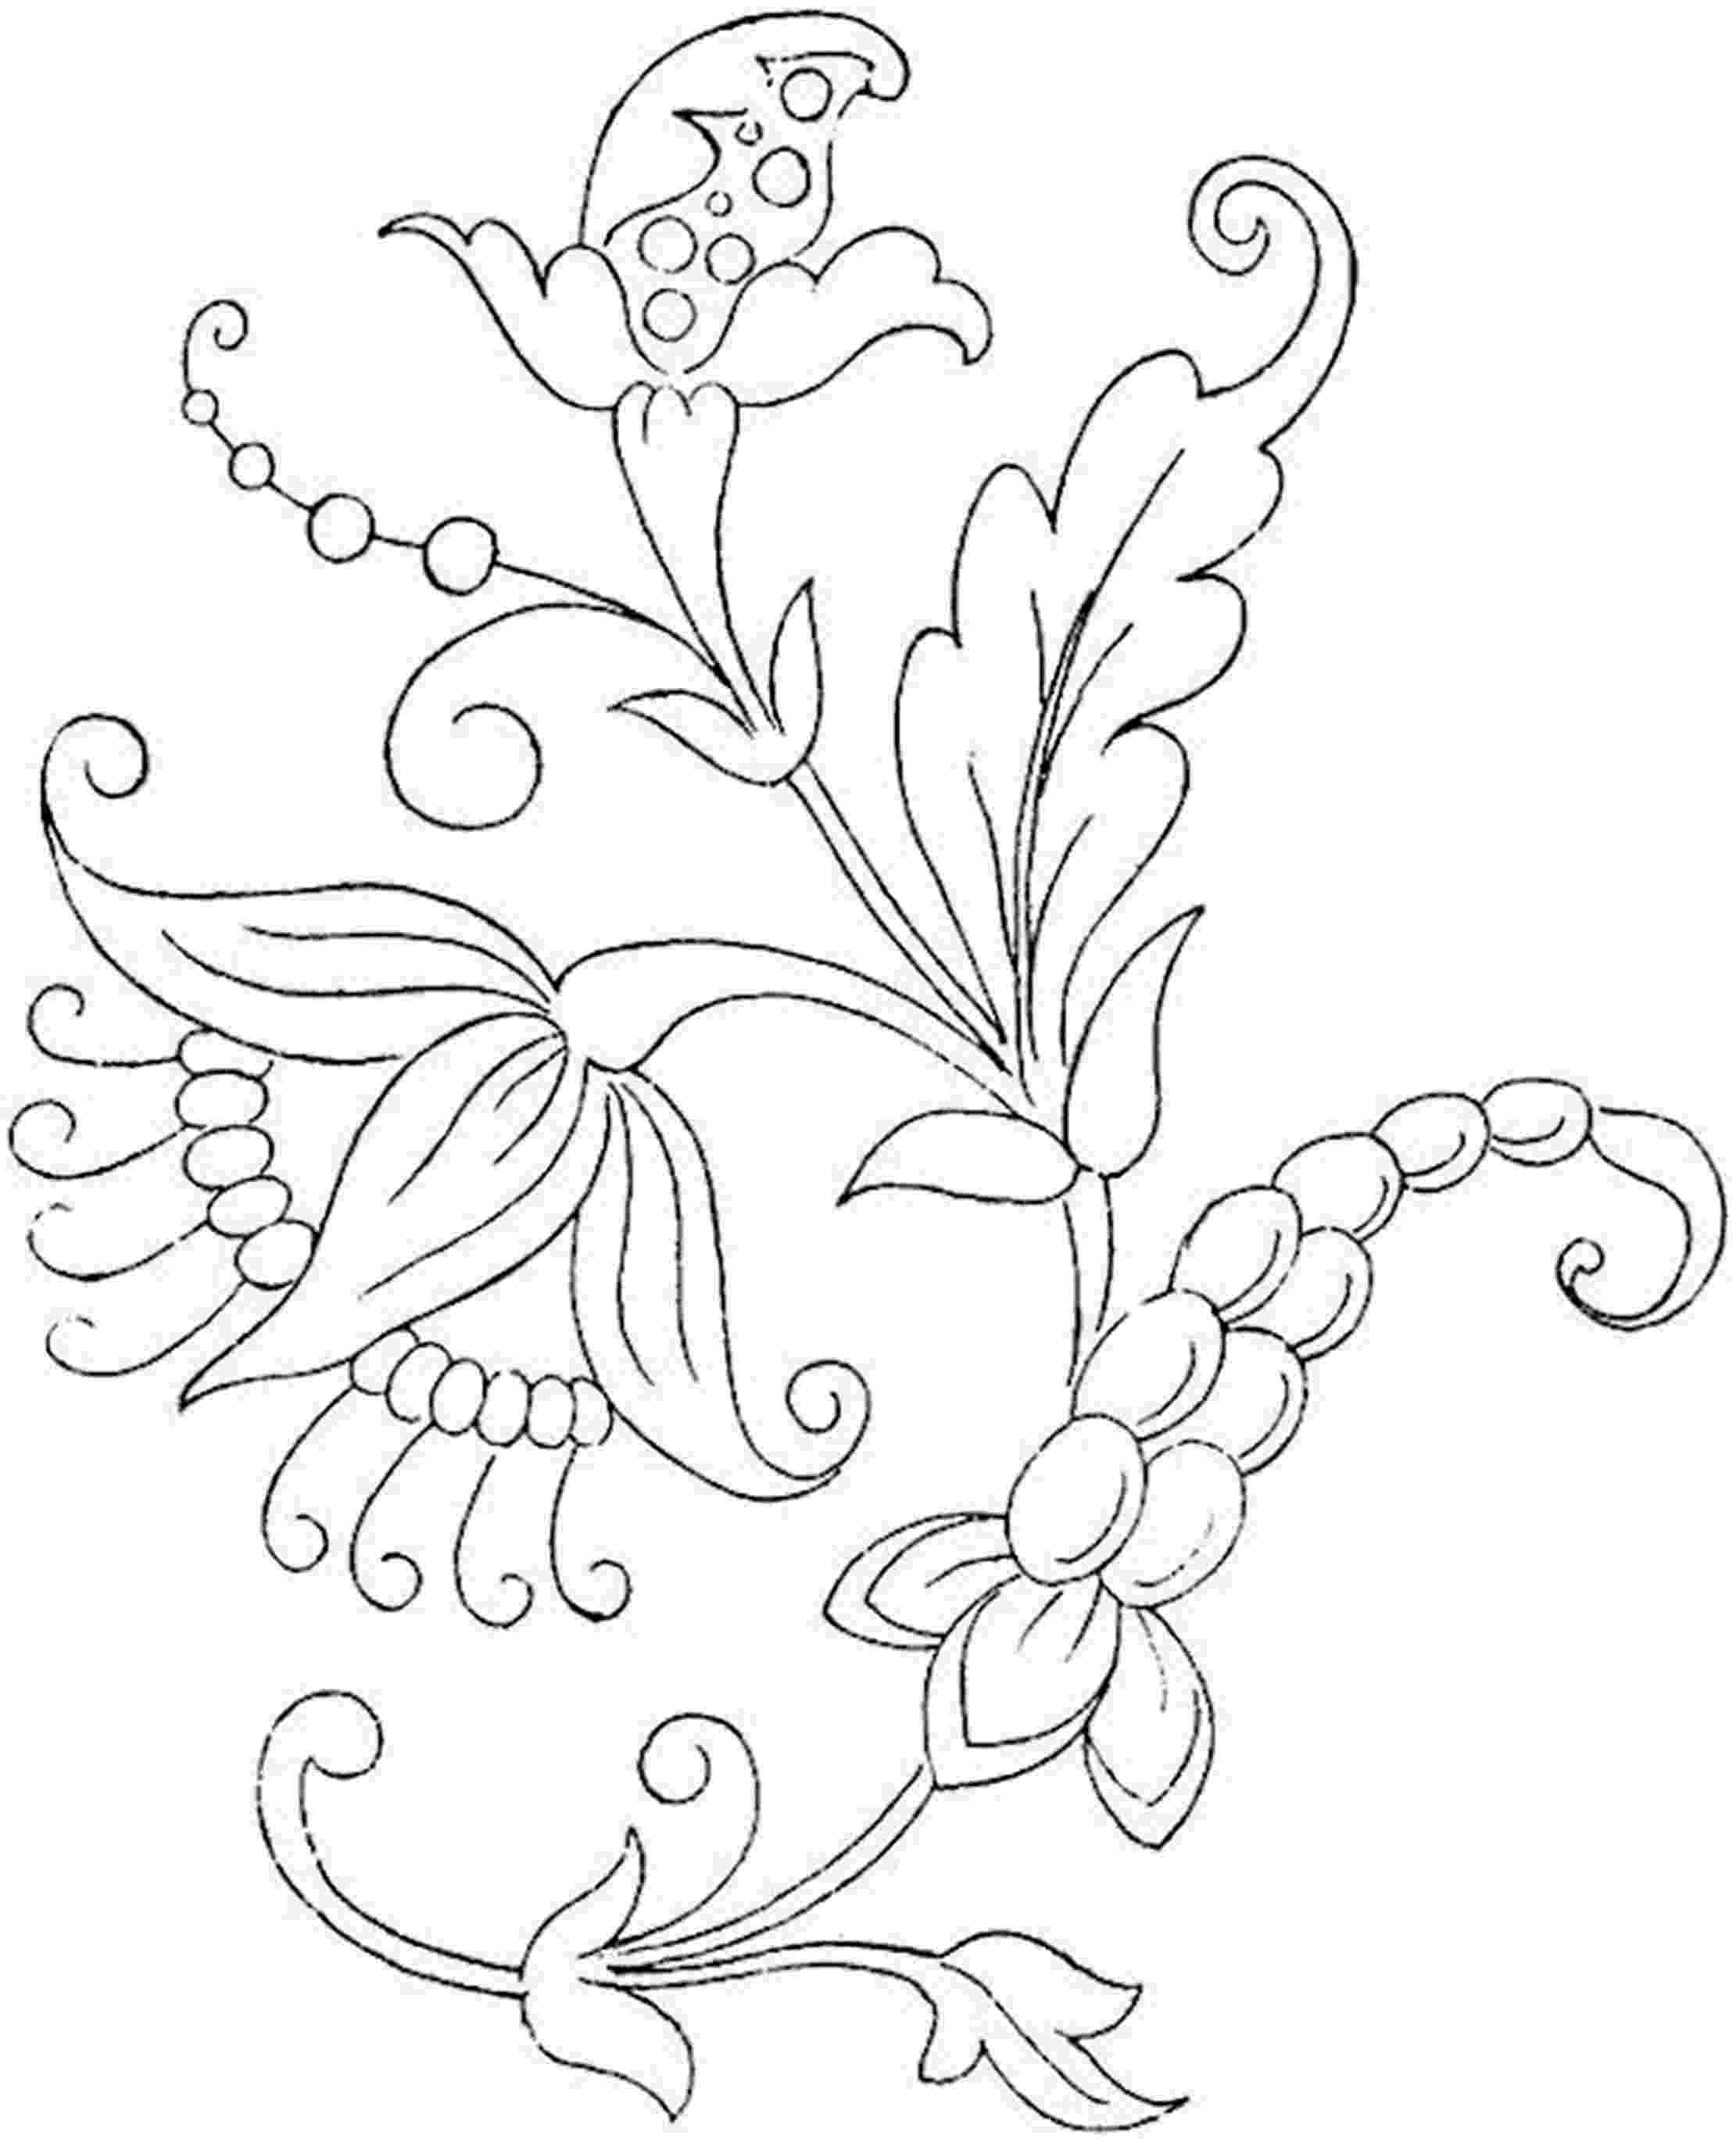 free coloring pictures of flowers free printable flower coloring pages for kids best of coloring free pictures flowers